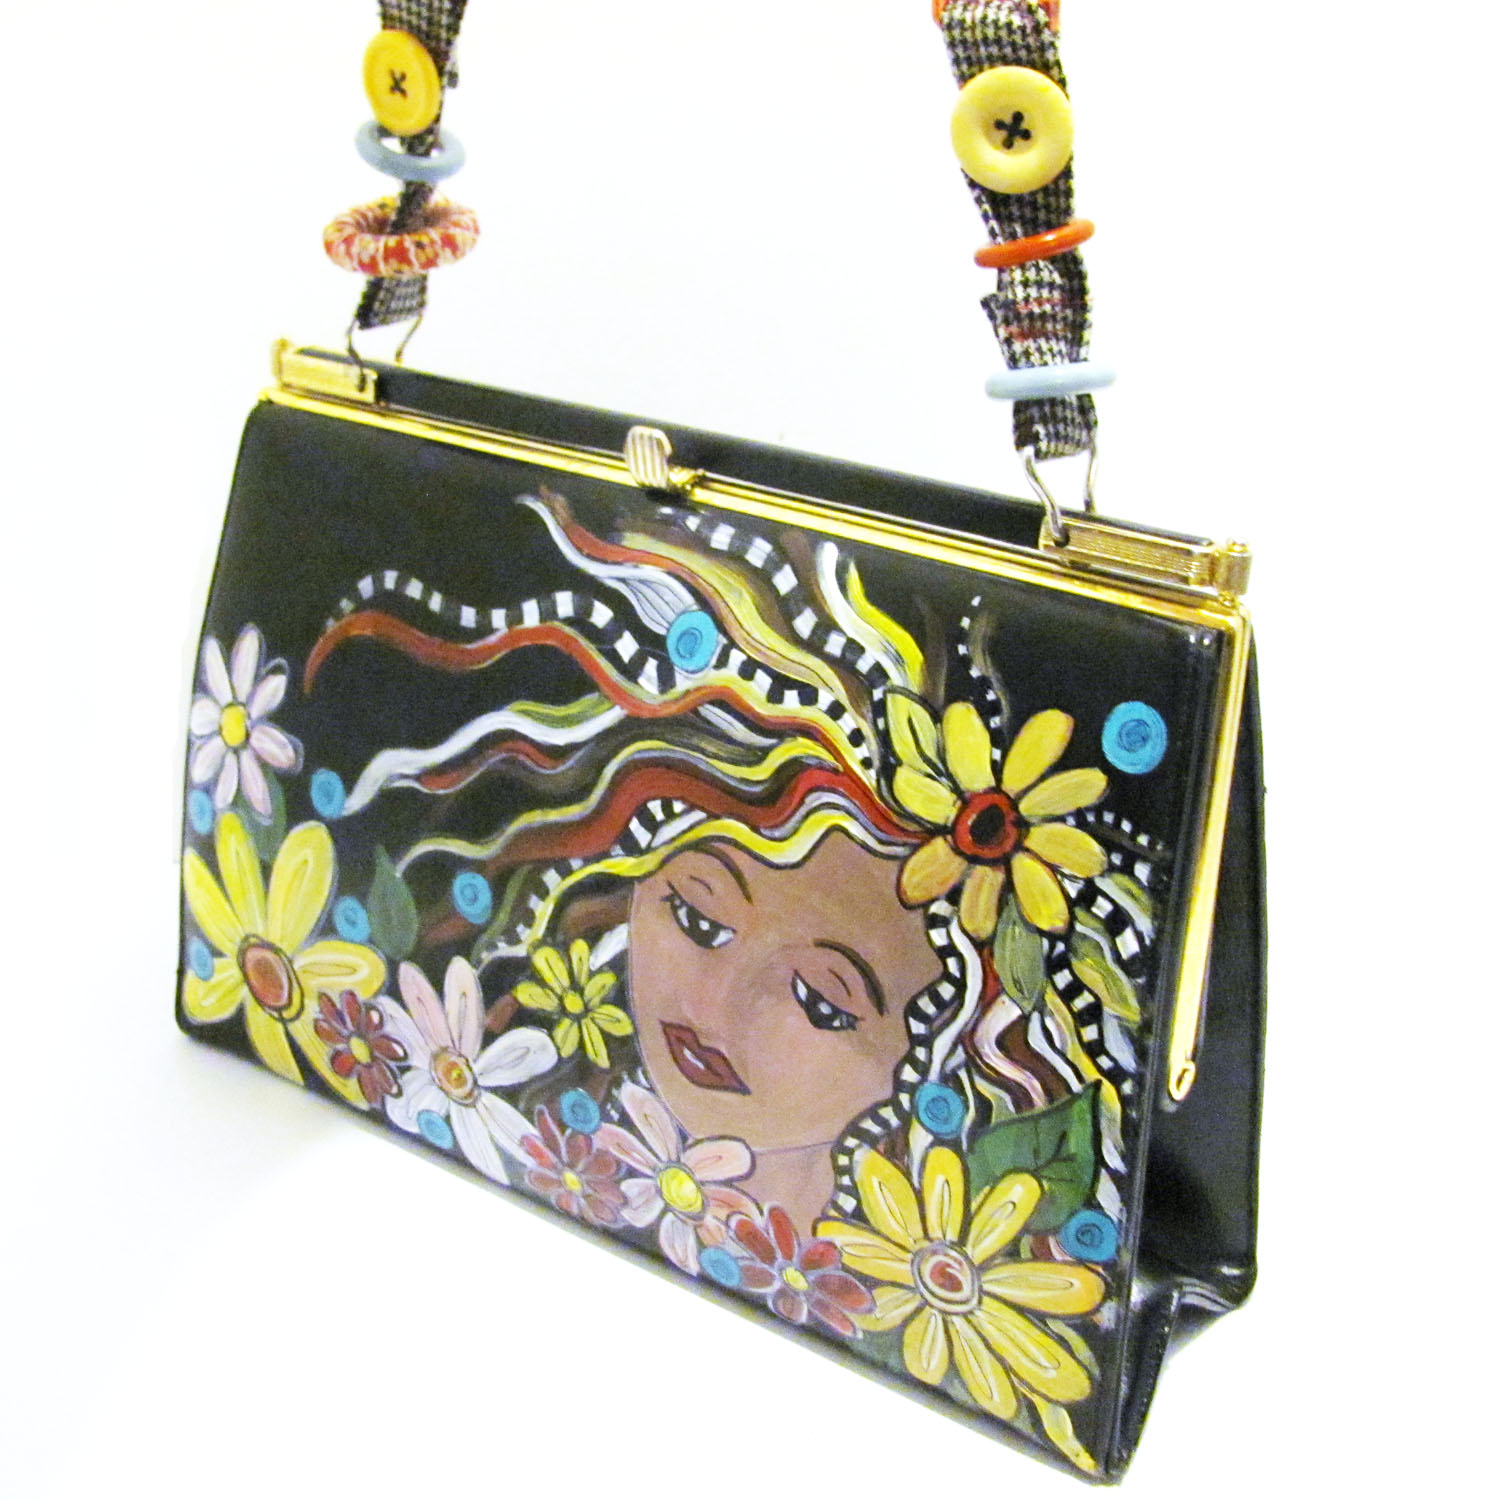 Painted Purse Tutorial From Victory Road